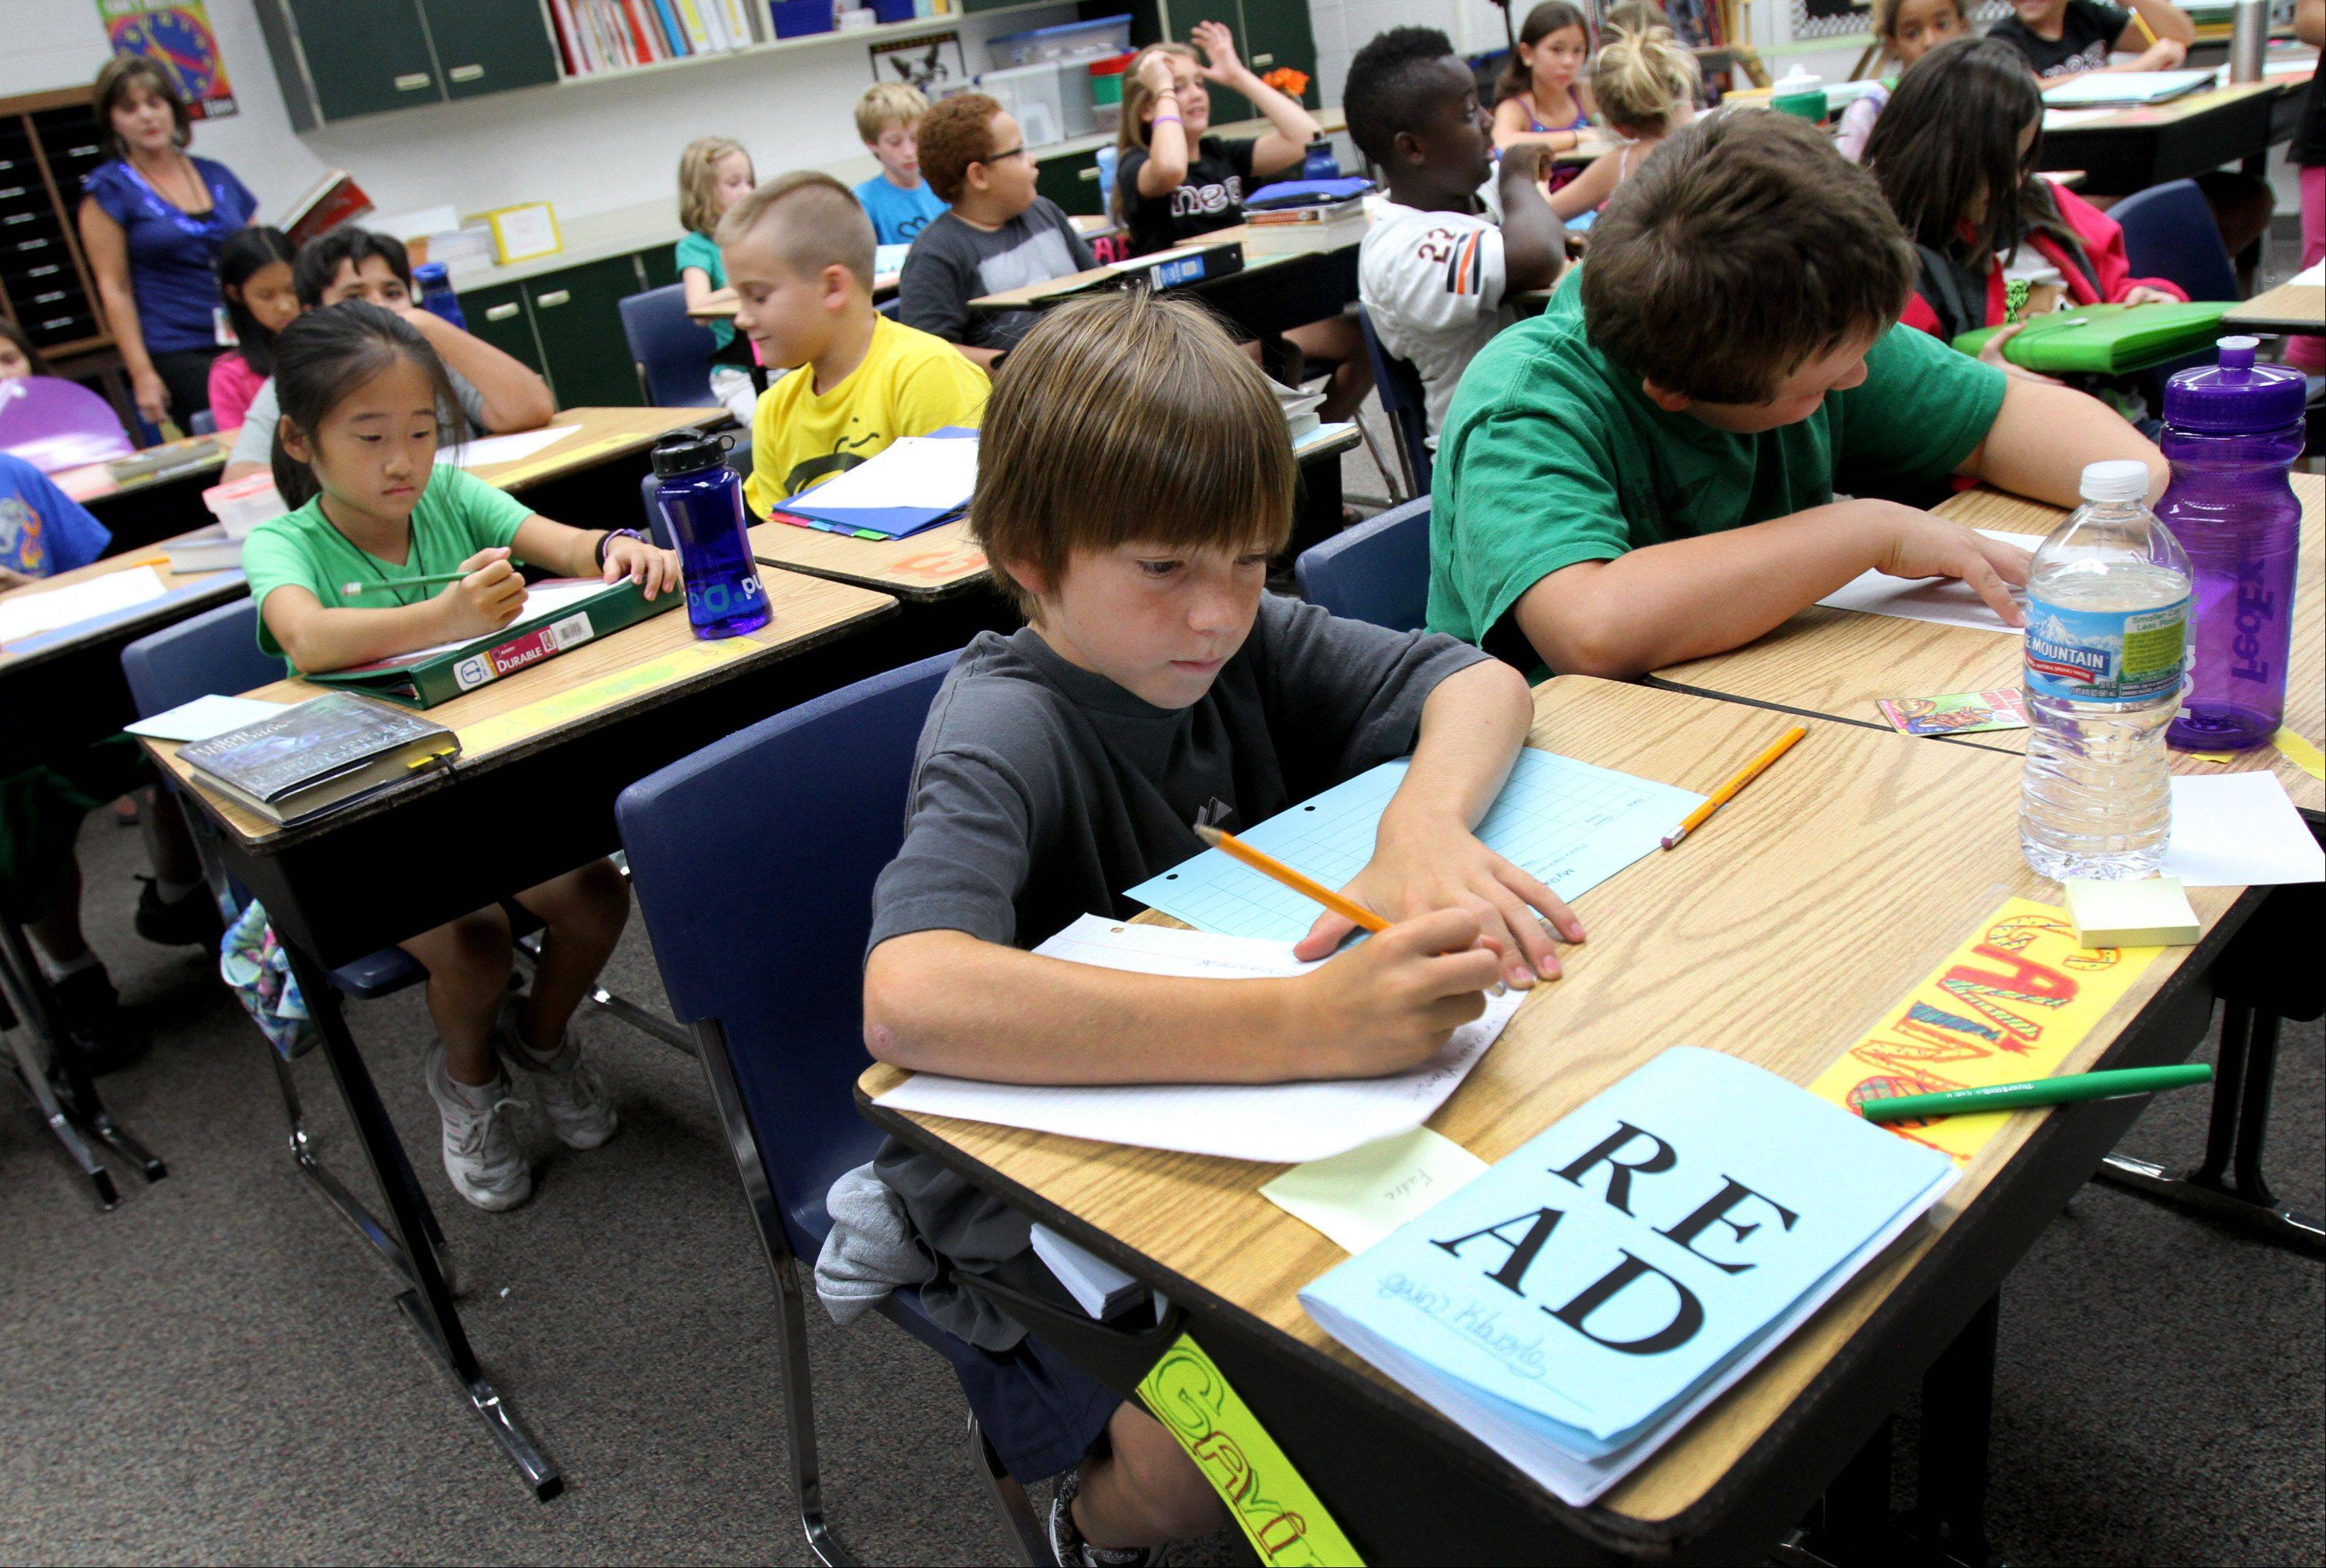 The average fifth-grade classroom at Naperville's Mill Street Elementary School now has 22 students, Principal Mary Baum said.